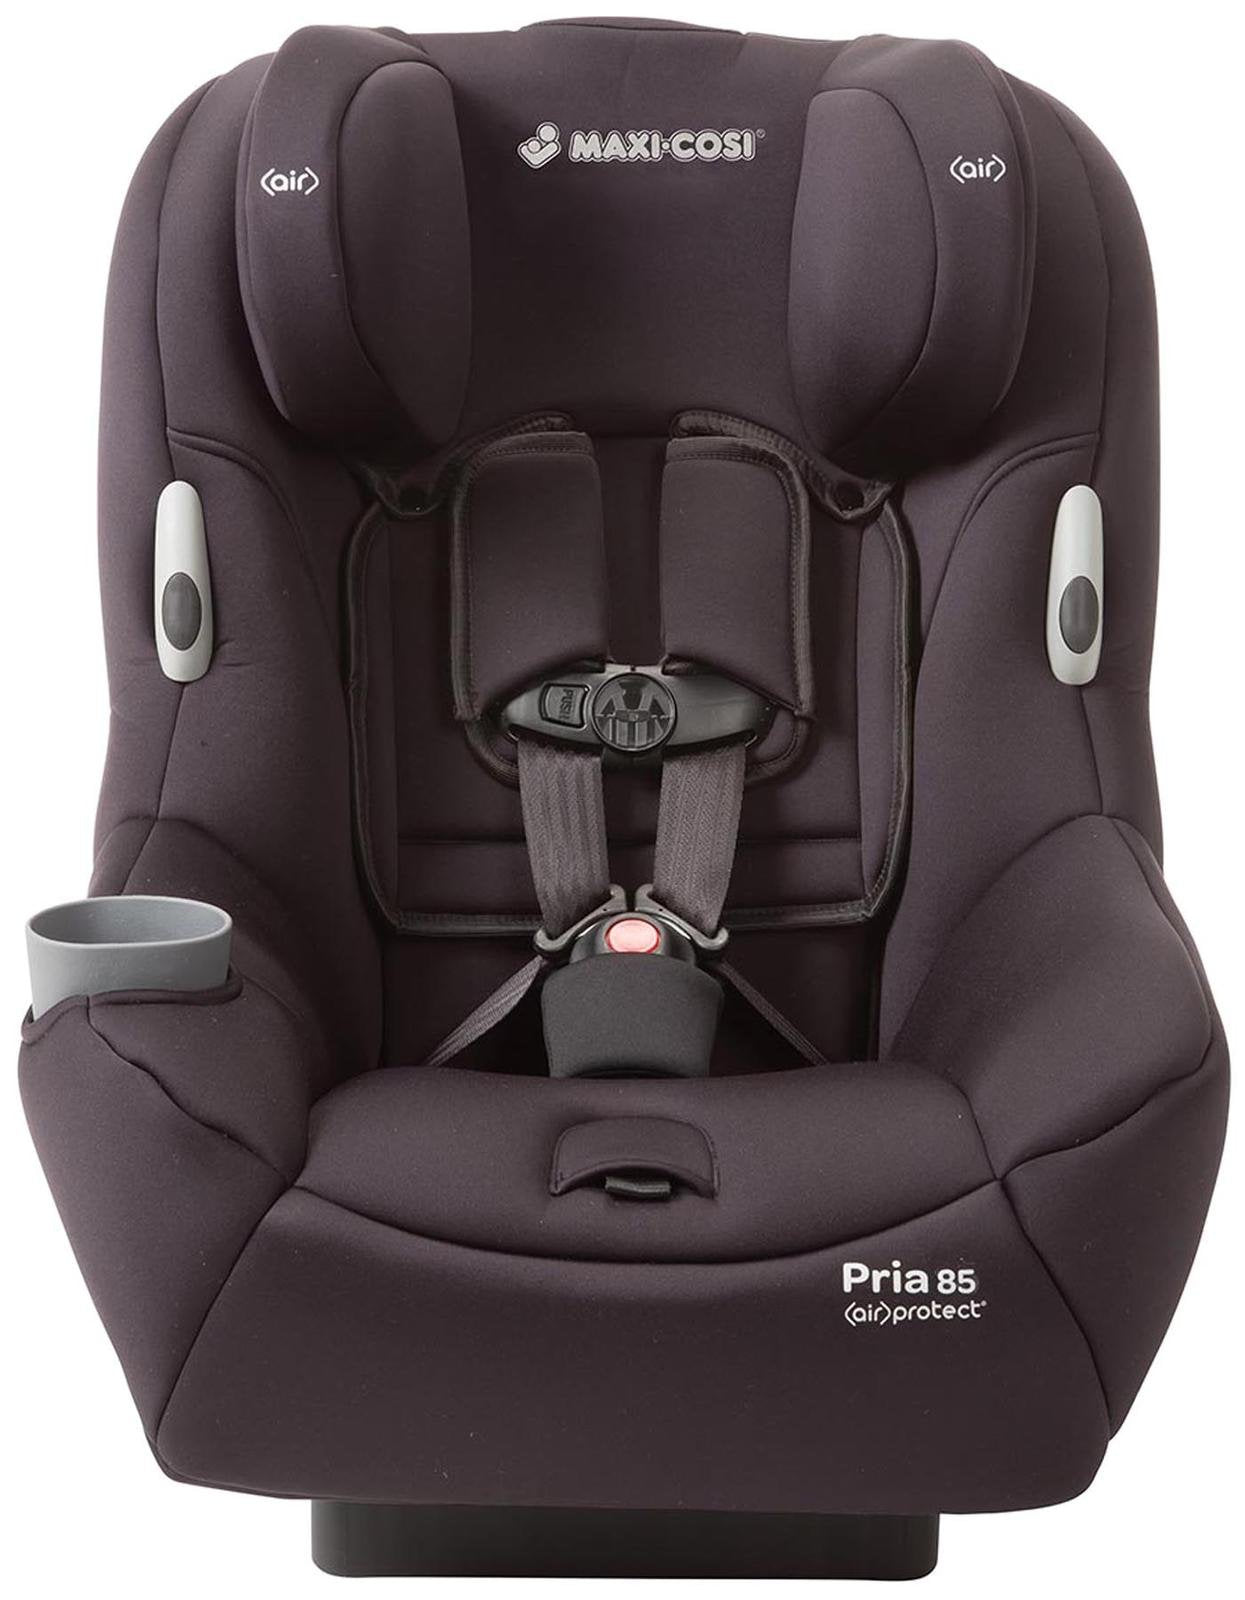 Car Seat, Baby Car Seats Your Baby Deserves Nothing More Than The Most Comfortable